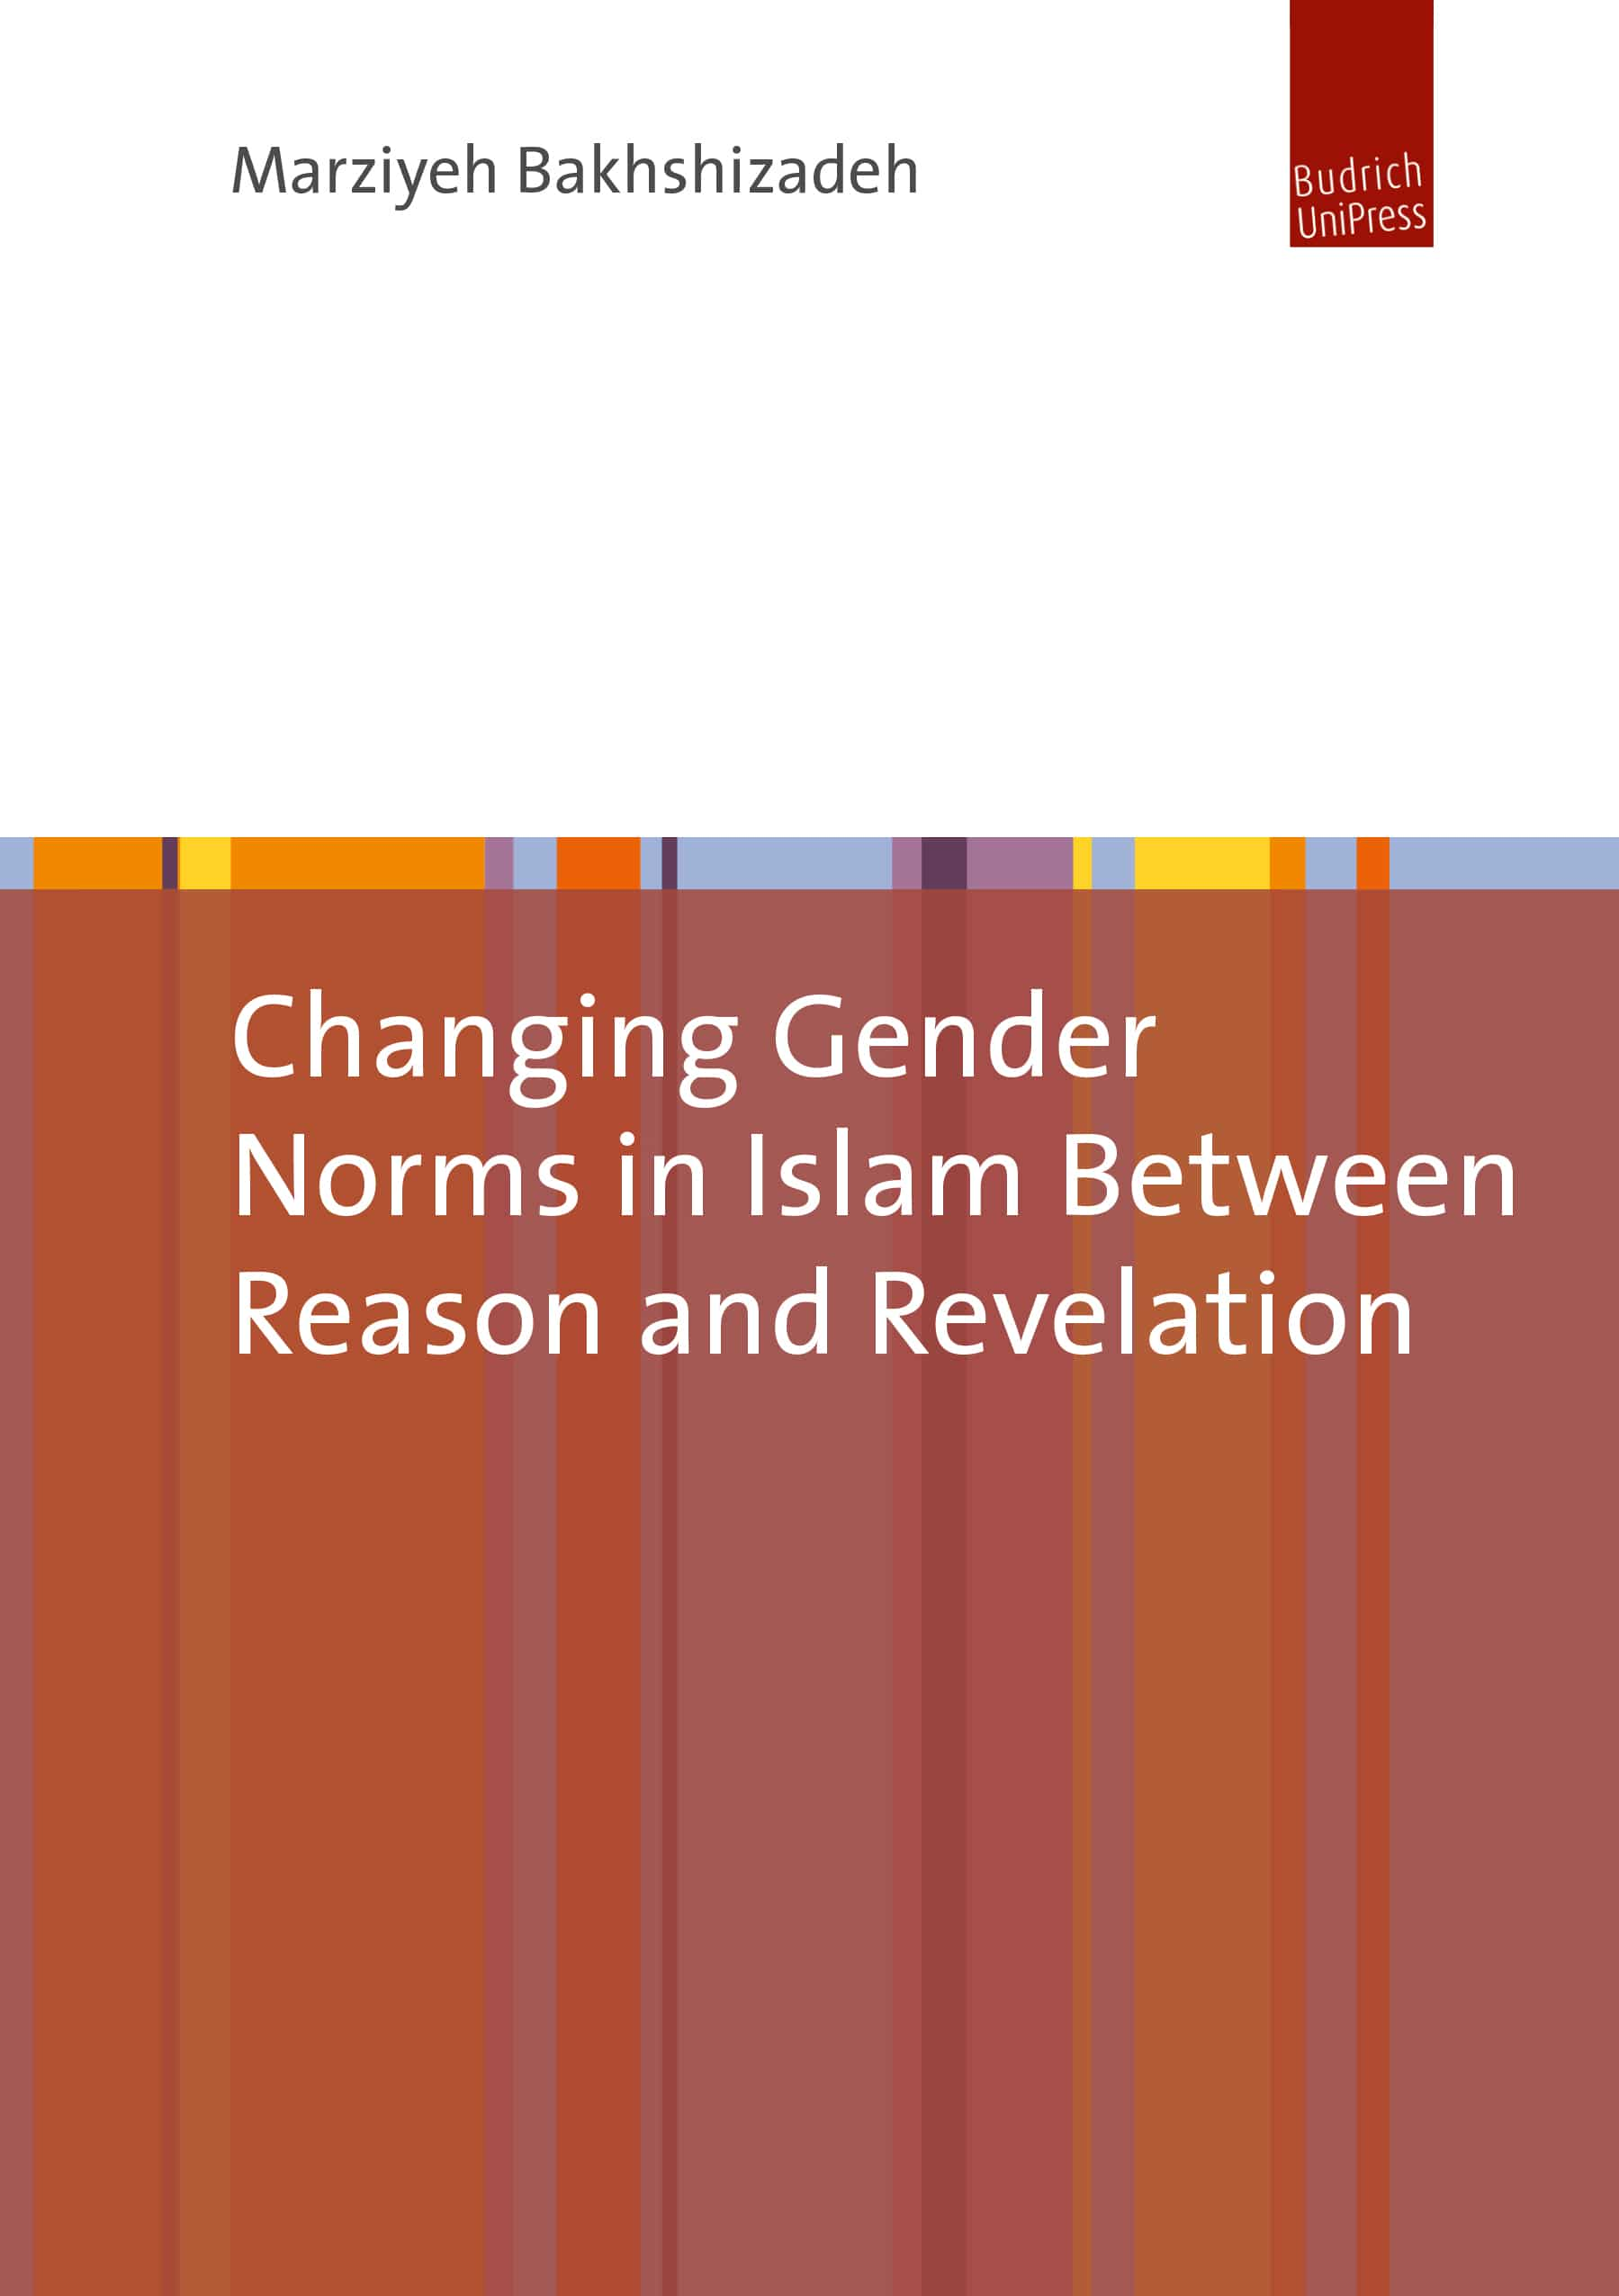 Marziyeh Bakhshizadeh: Changing Gender Norms in Islam Between Reason and Revelation